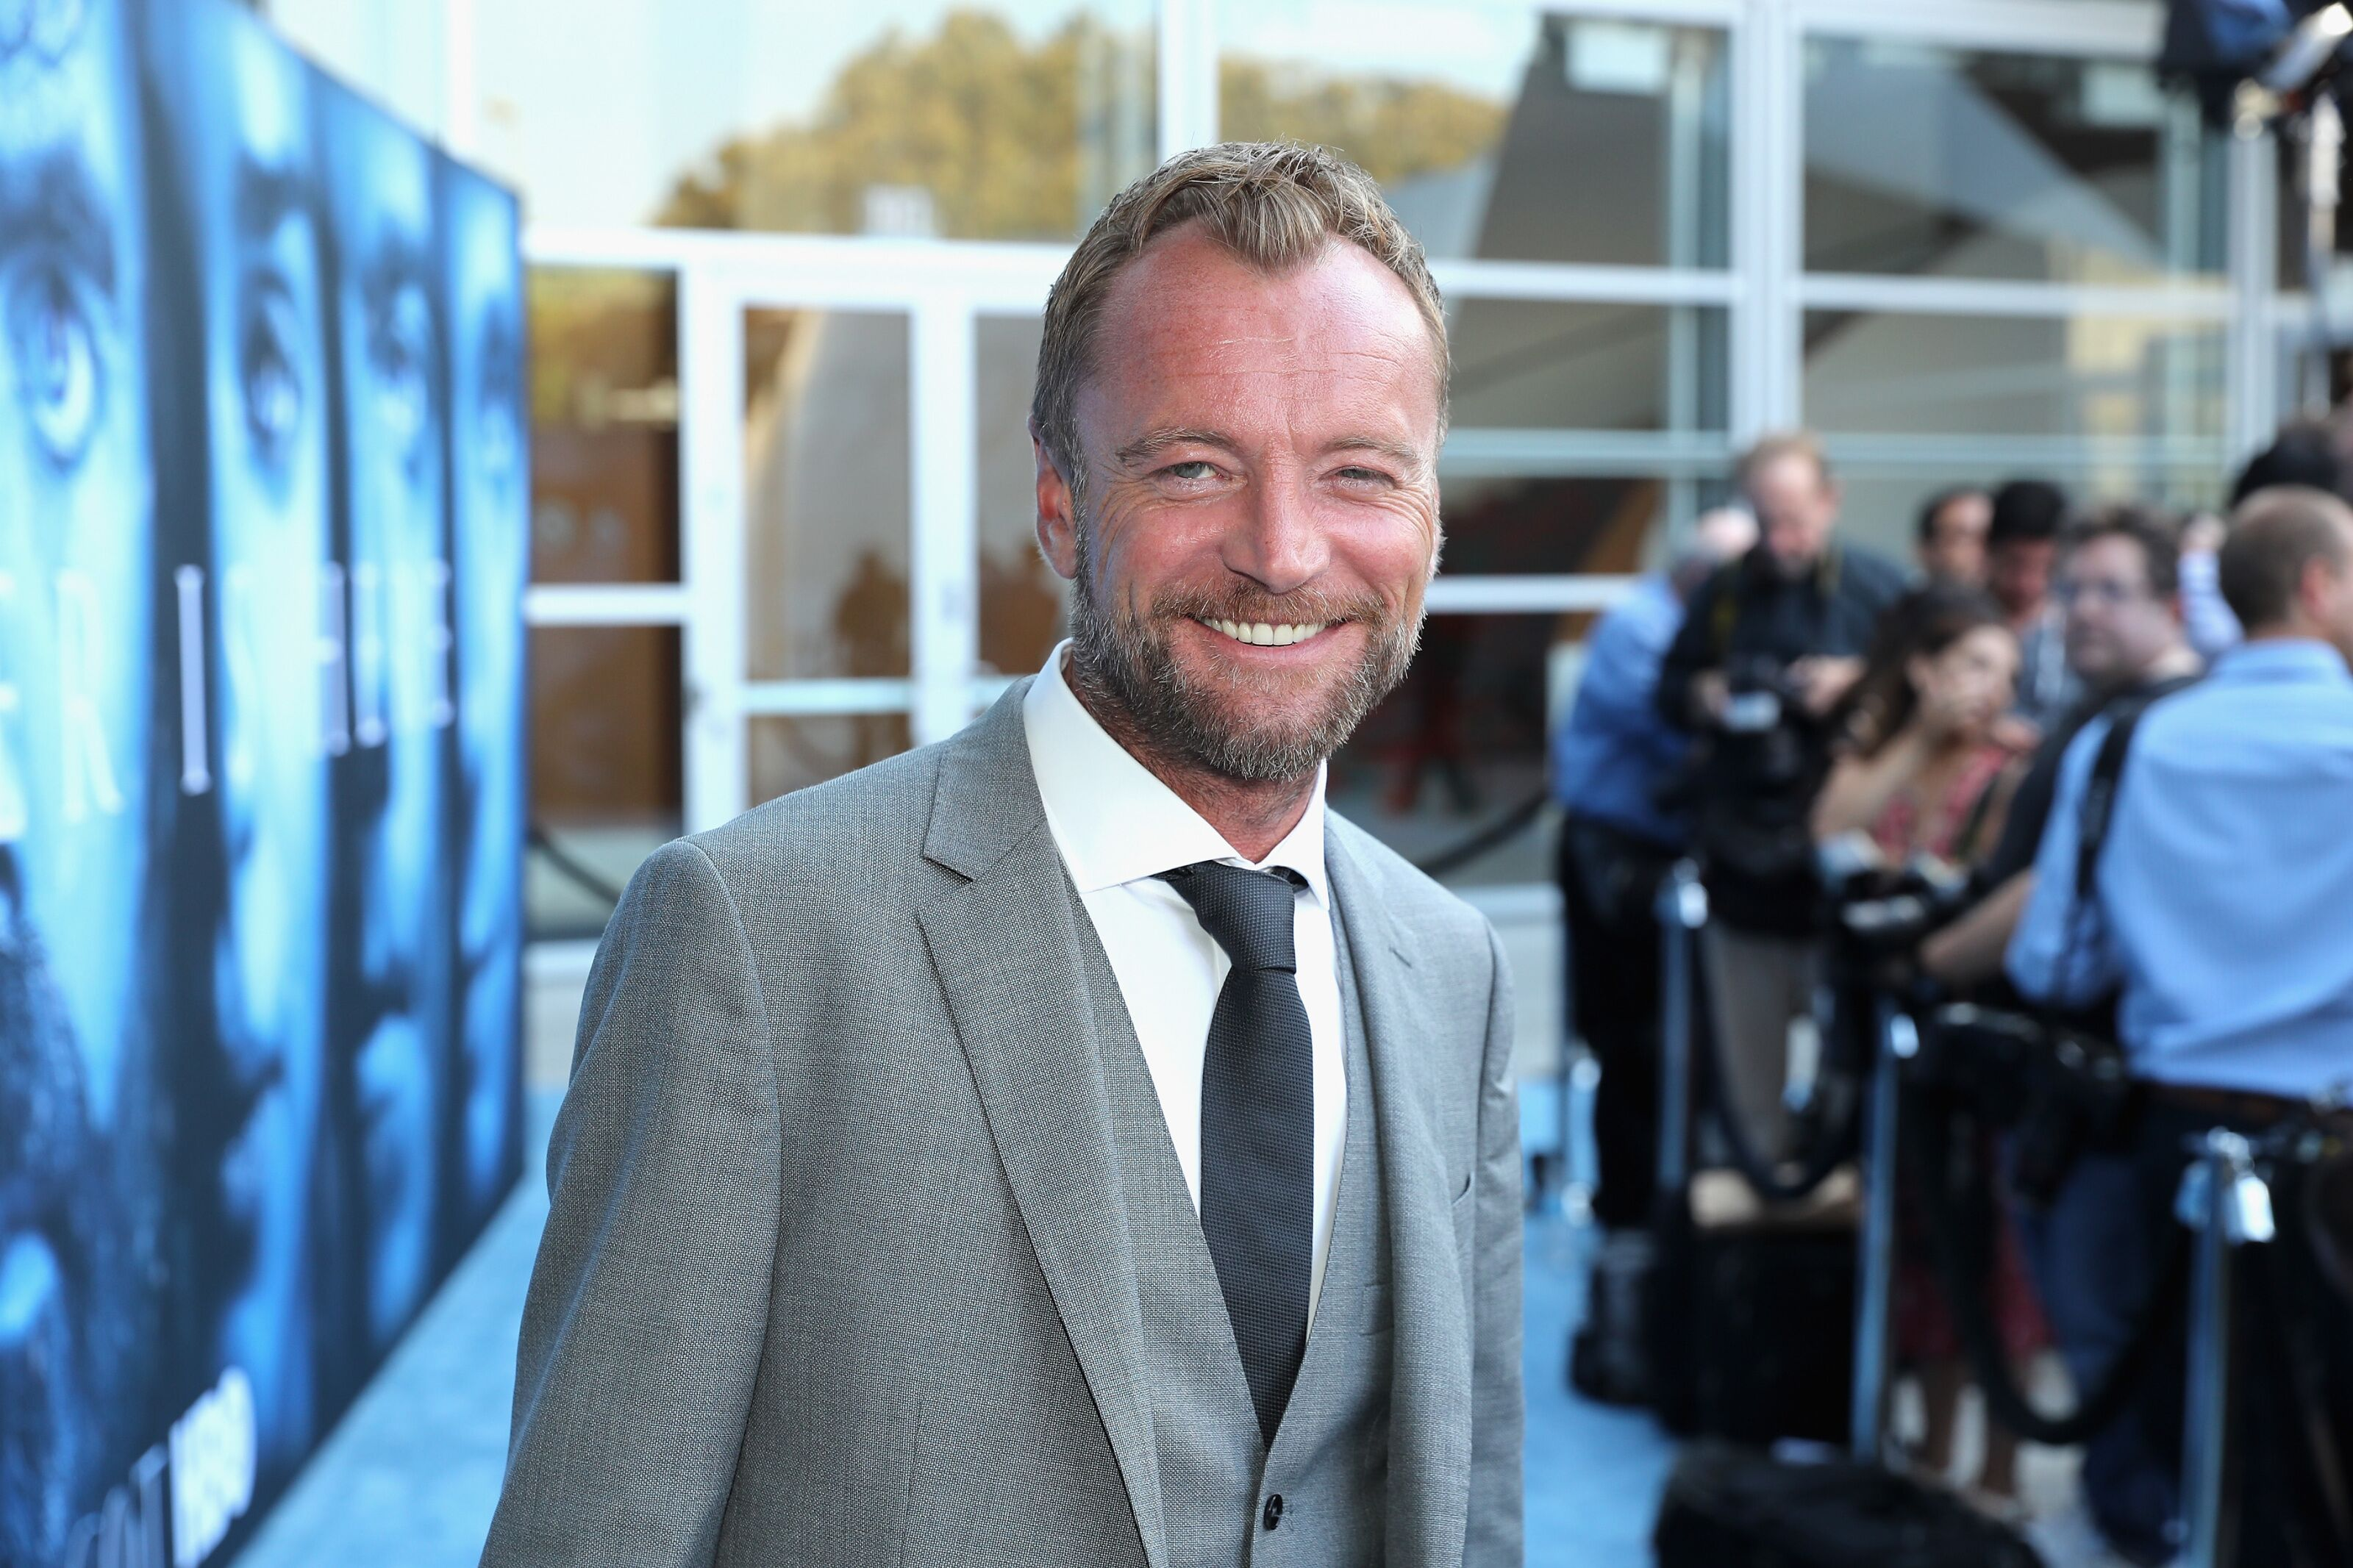 Thrones' Richard Dormer to star in BBC's The Watch